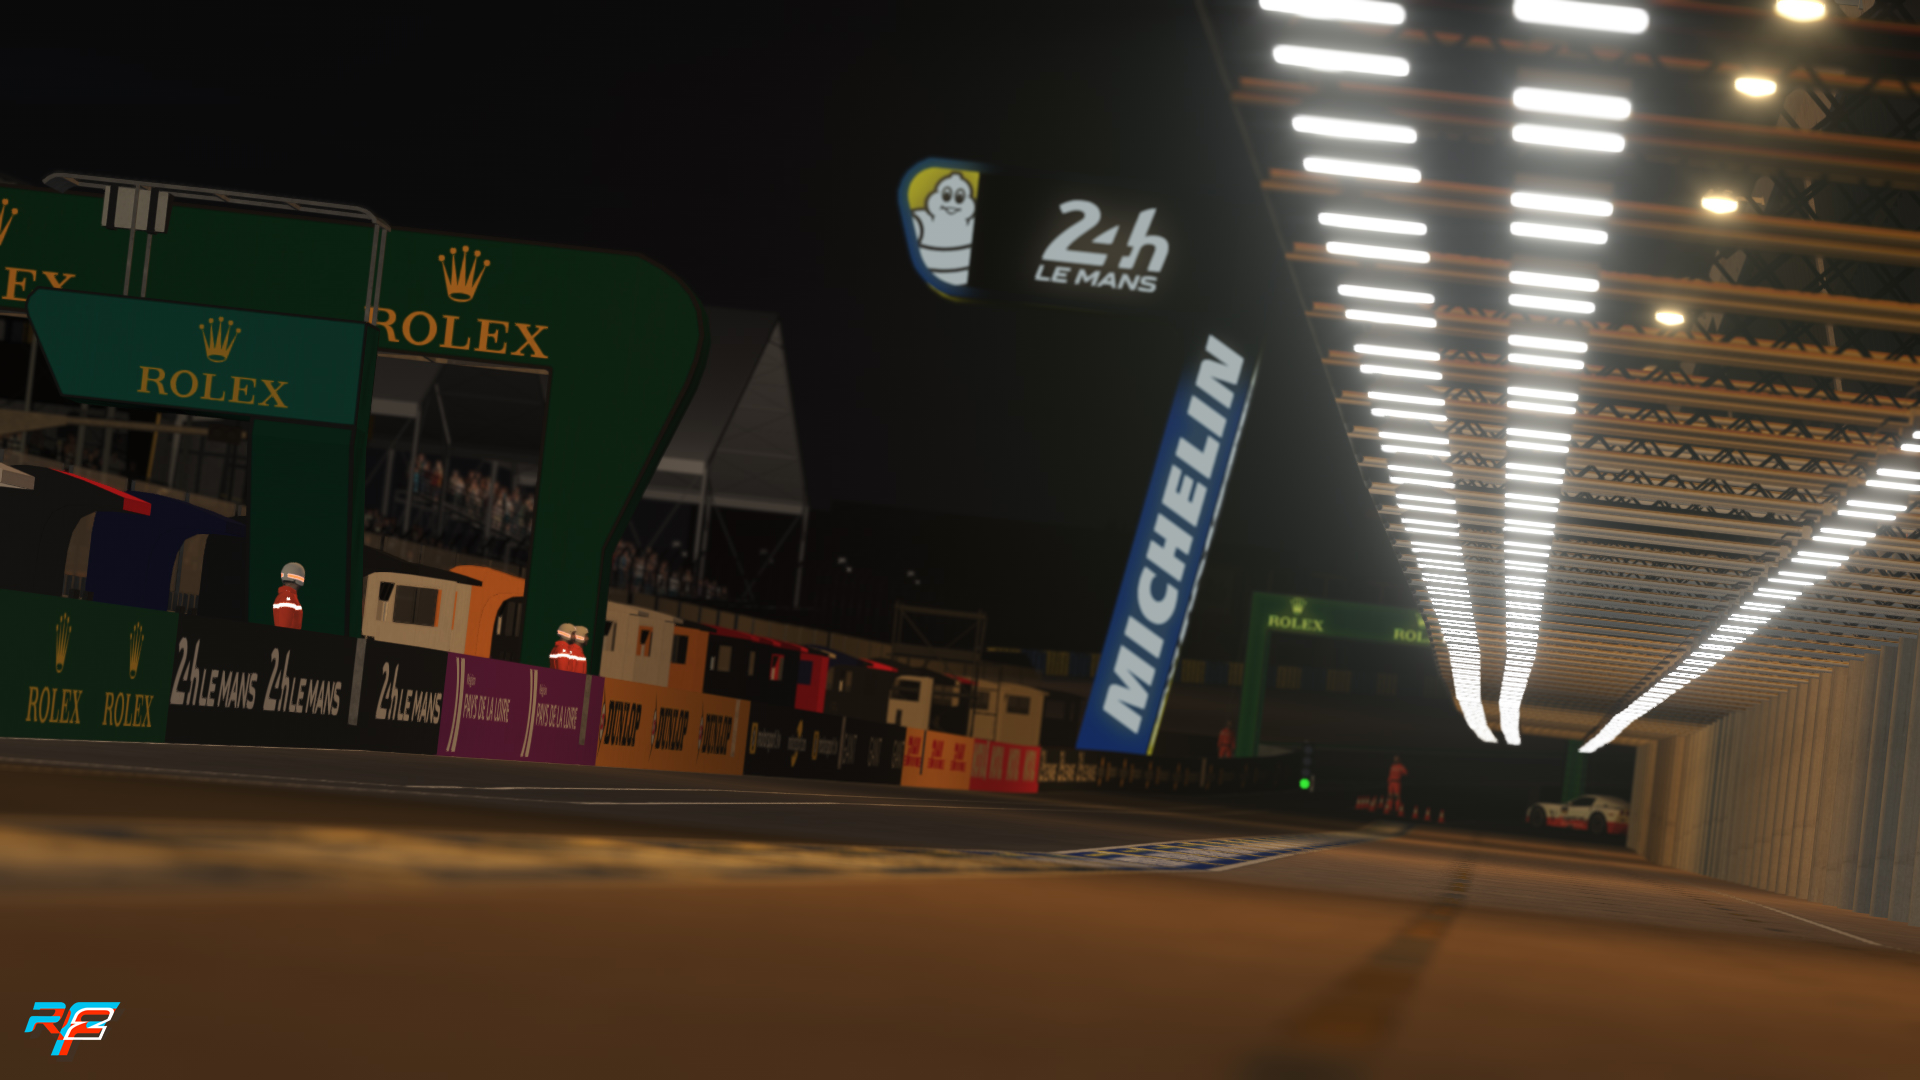 107519933_3292489760801913_2605828468260714194_o New rFactor 2 Update Adds 2020 Le Mans